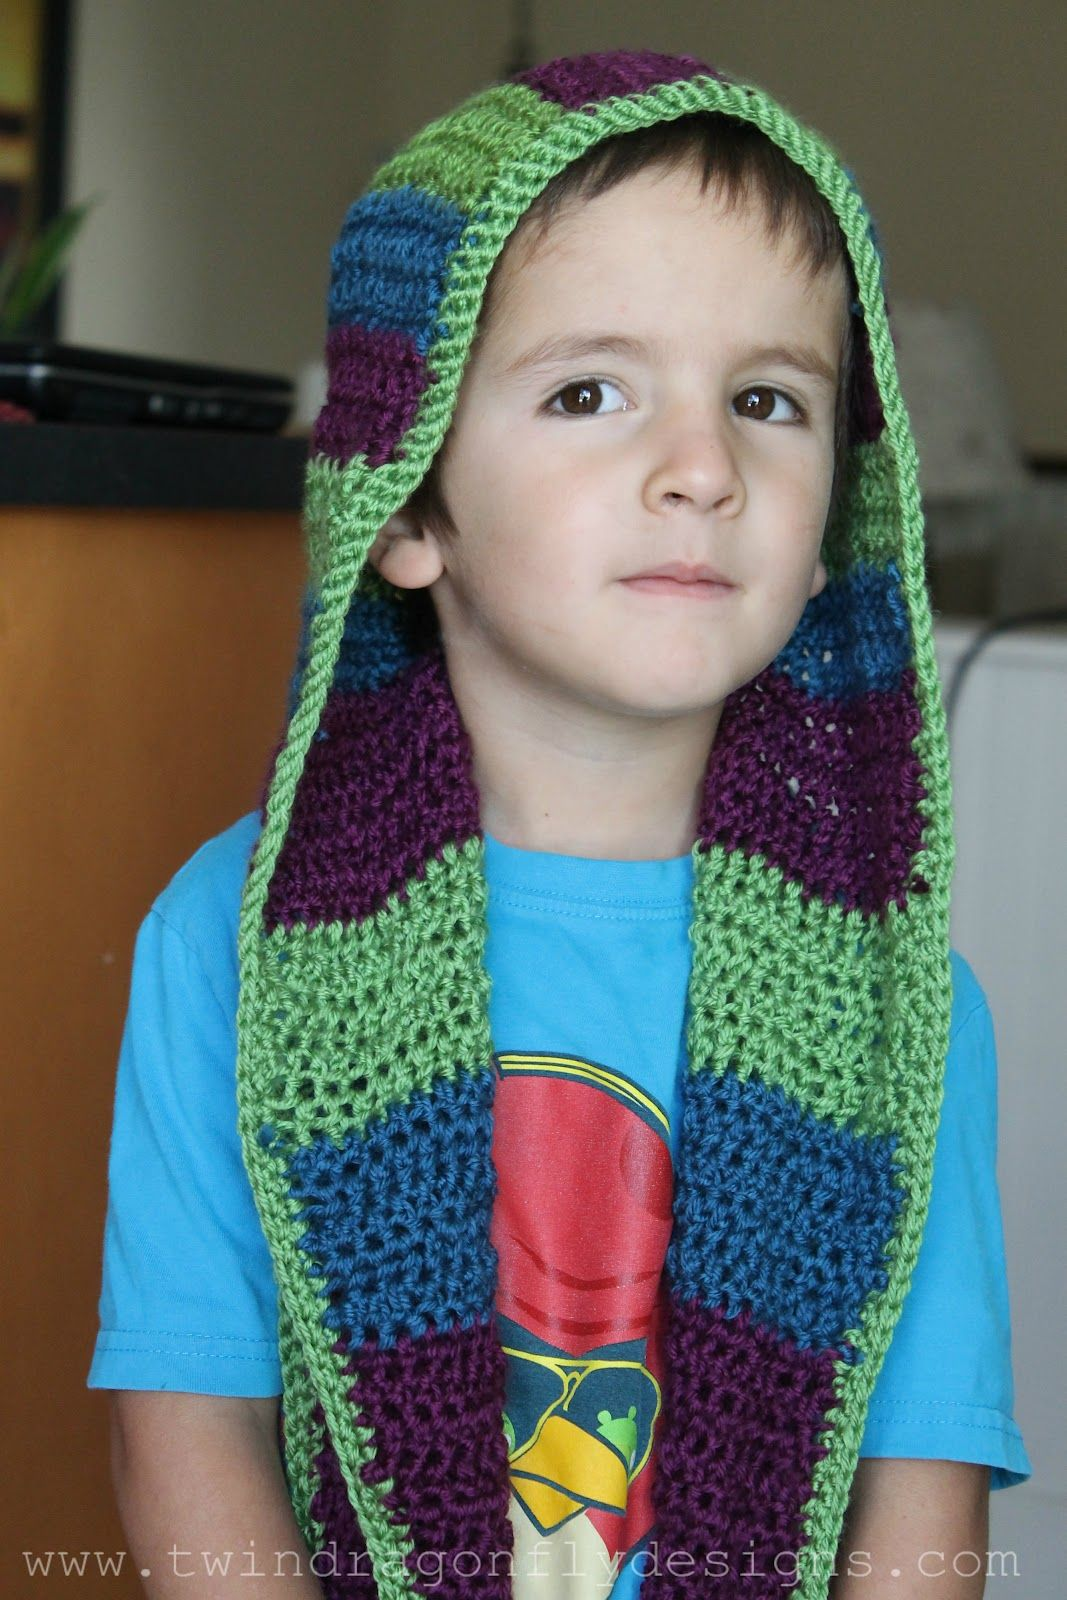 Crochet Hooded Scarf Pattern Interesting Inspiration Ideas